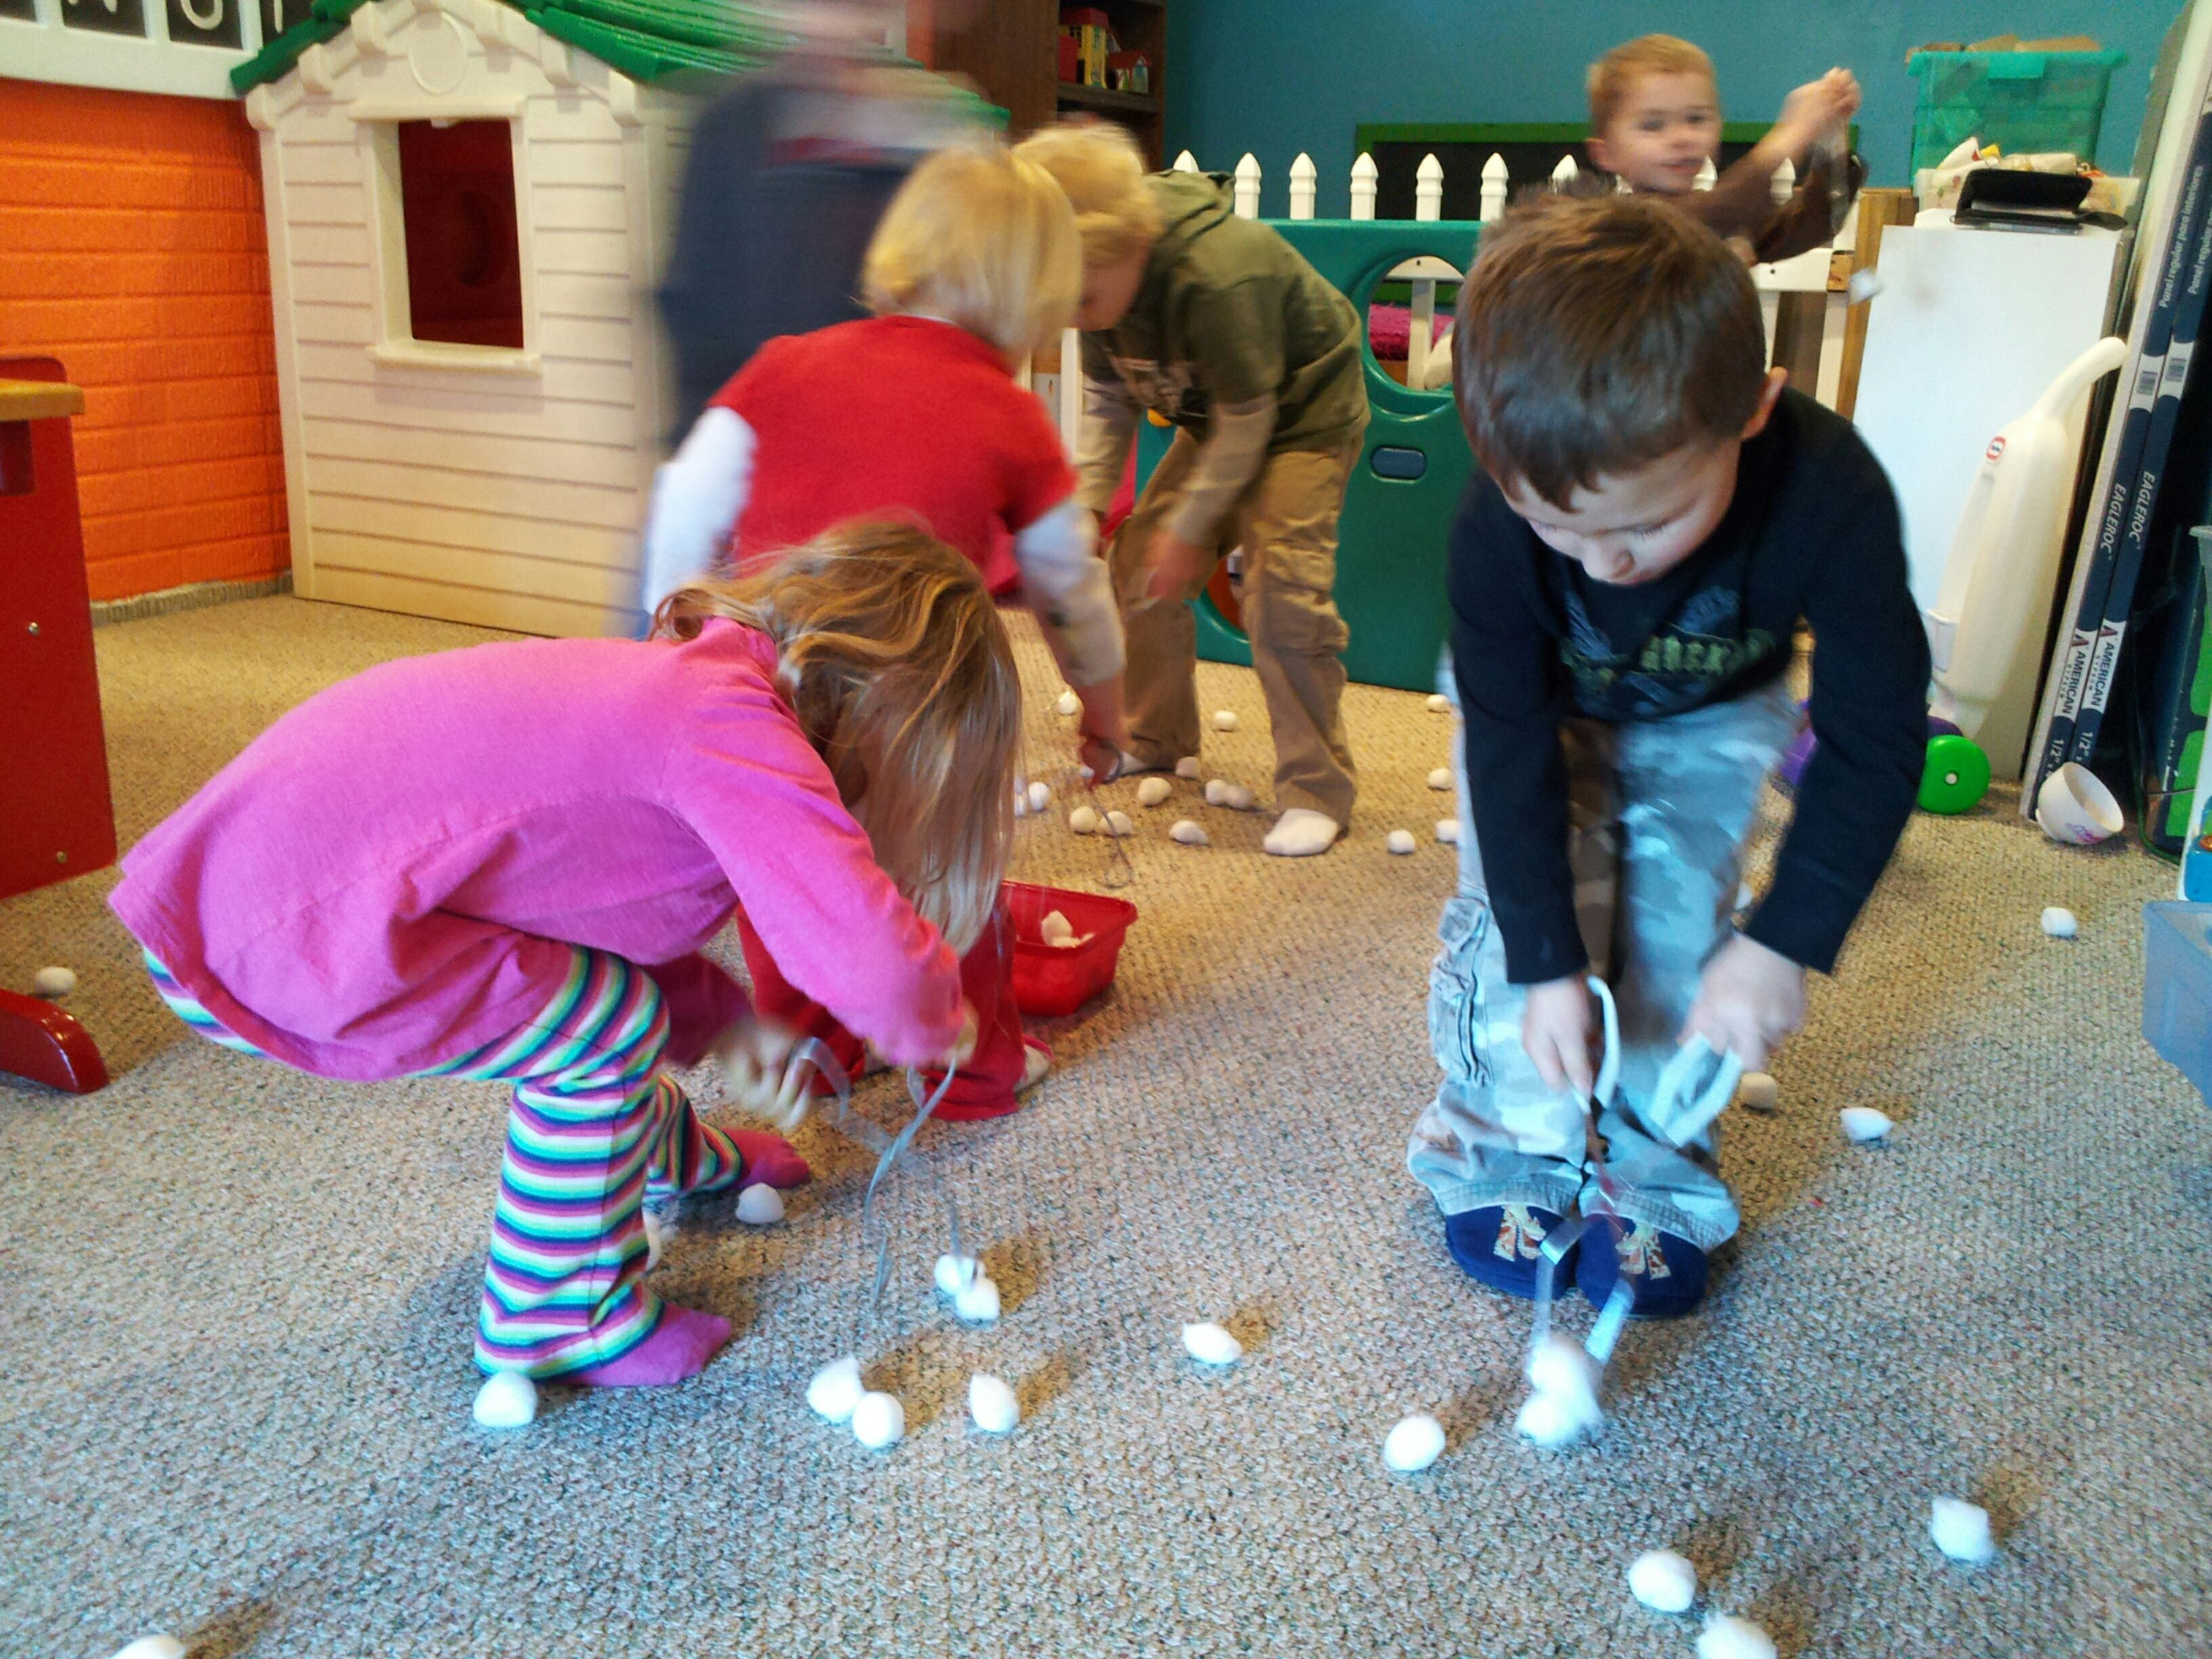 Snowball pickup. Scatter cotton balls around the room and